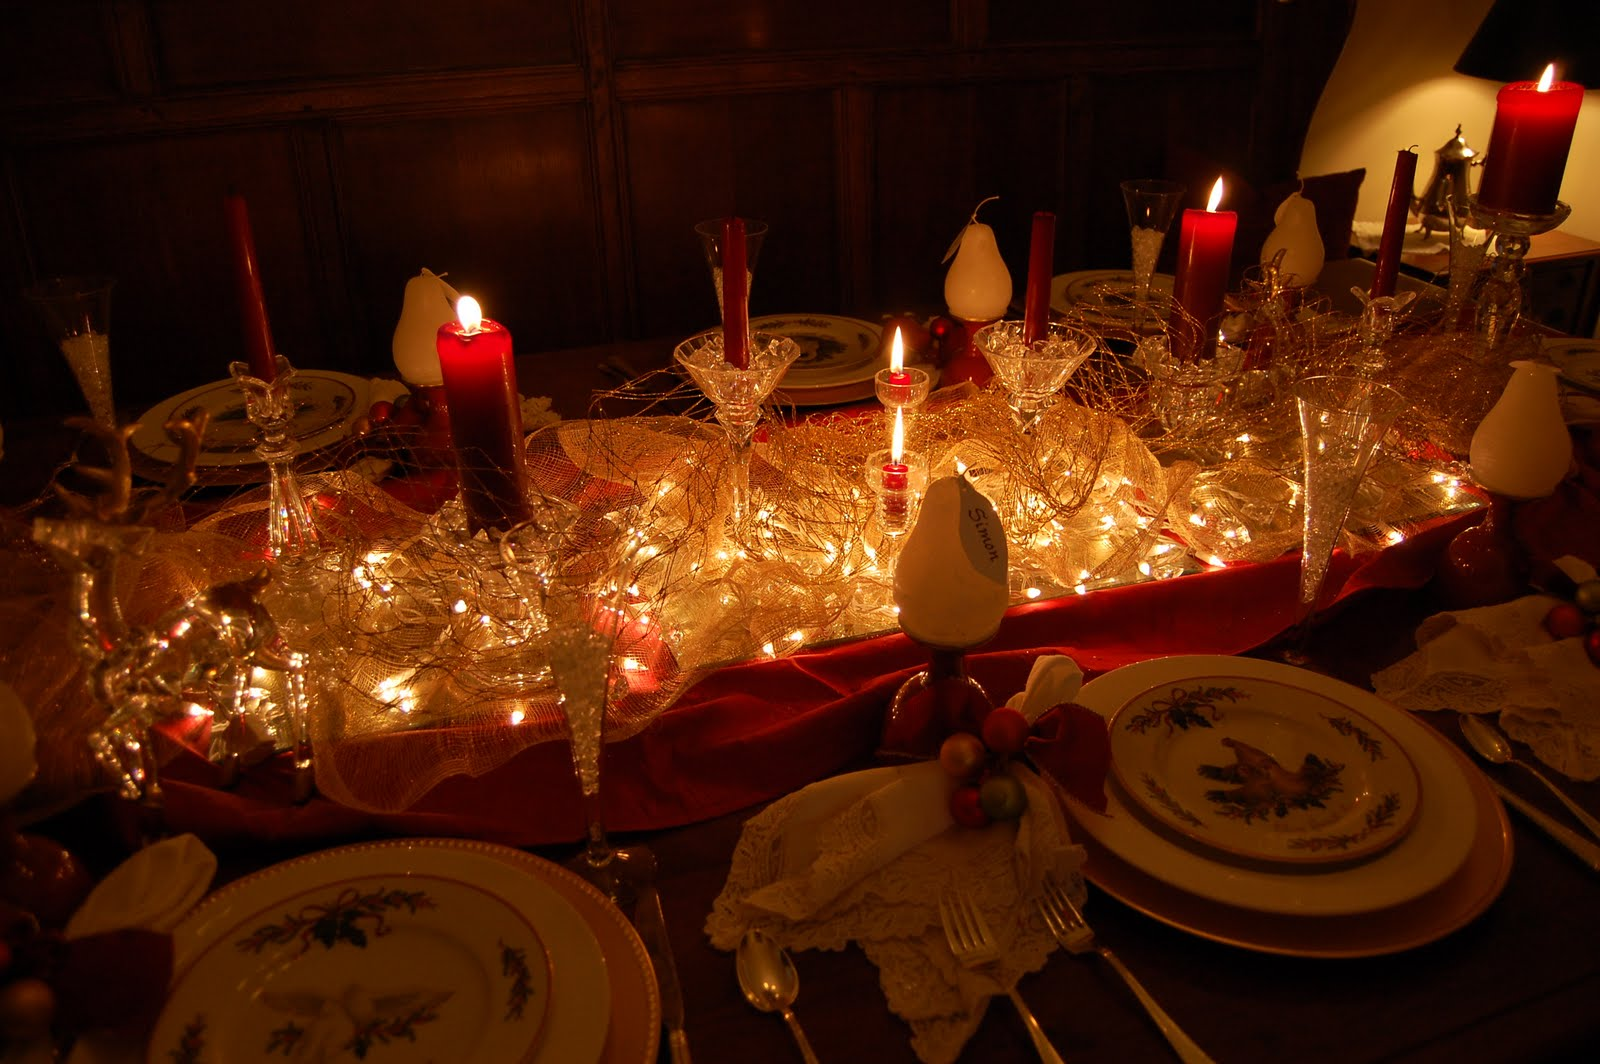 #270A00 Christmas And Holiday Tablescapes Table Settings 5273 decoration table noel monoprix 1600x1064 px @ aertt.com